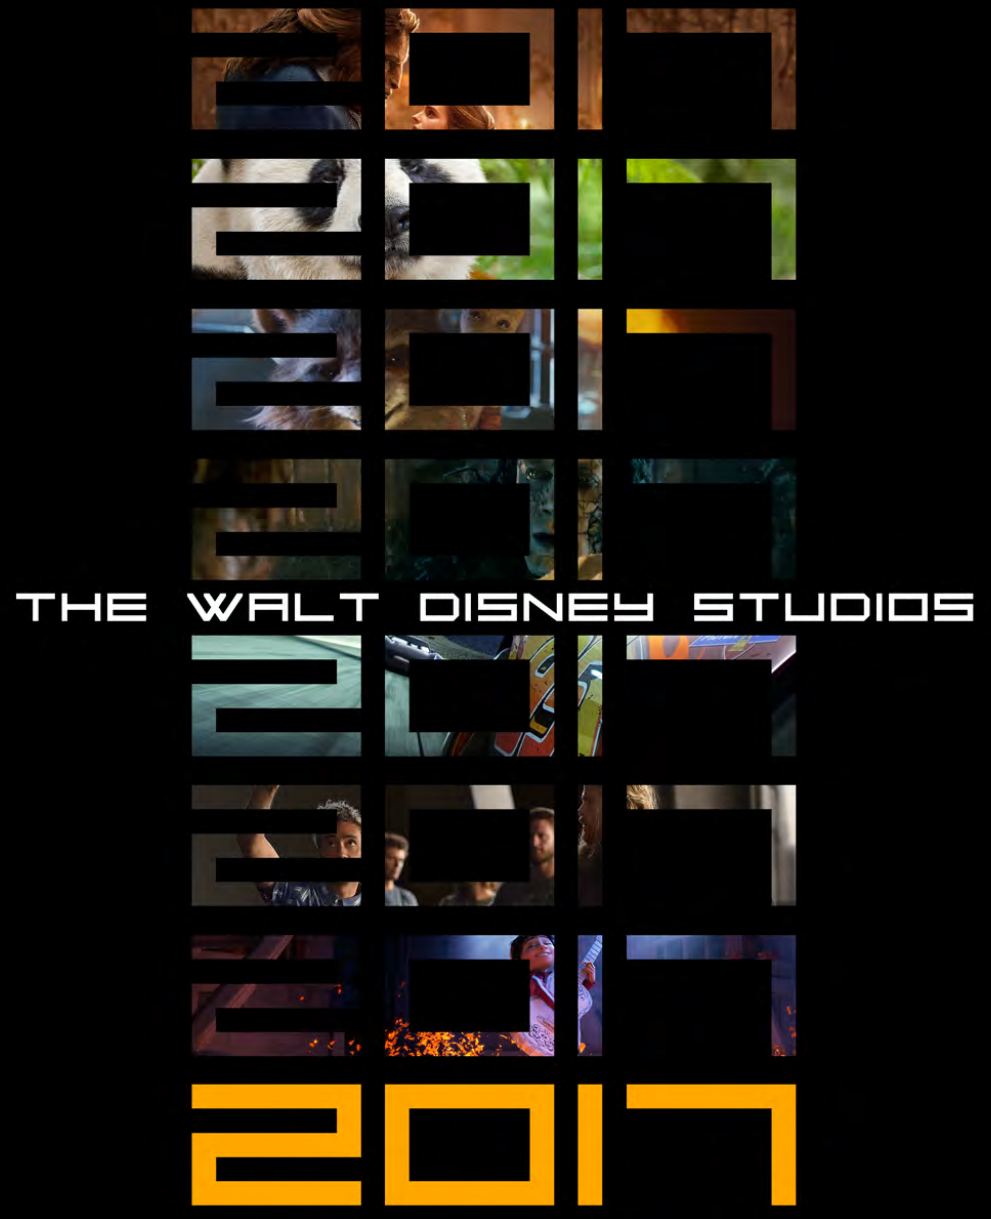 Don't miss the 2017 Walt Disney Studios Film Schedule for a peek at all the cool movies coming soon.